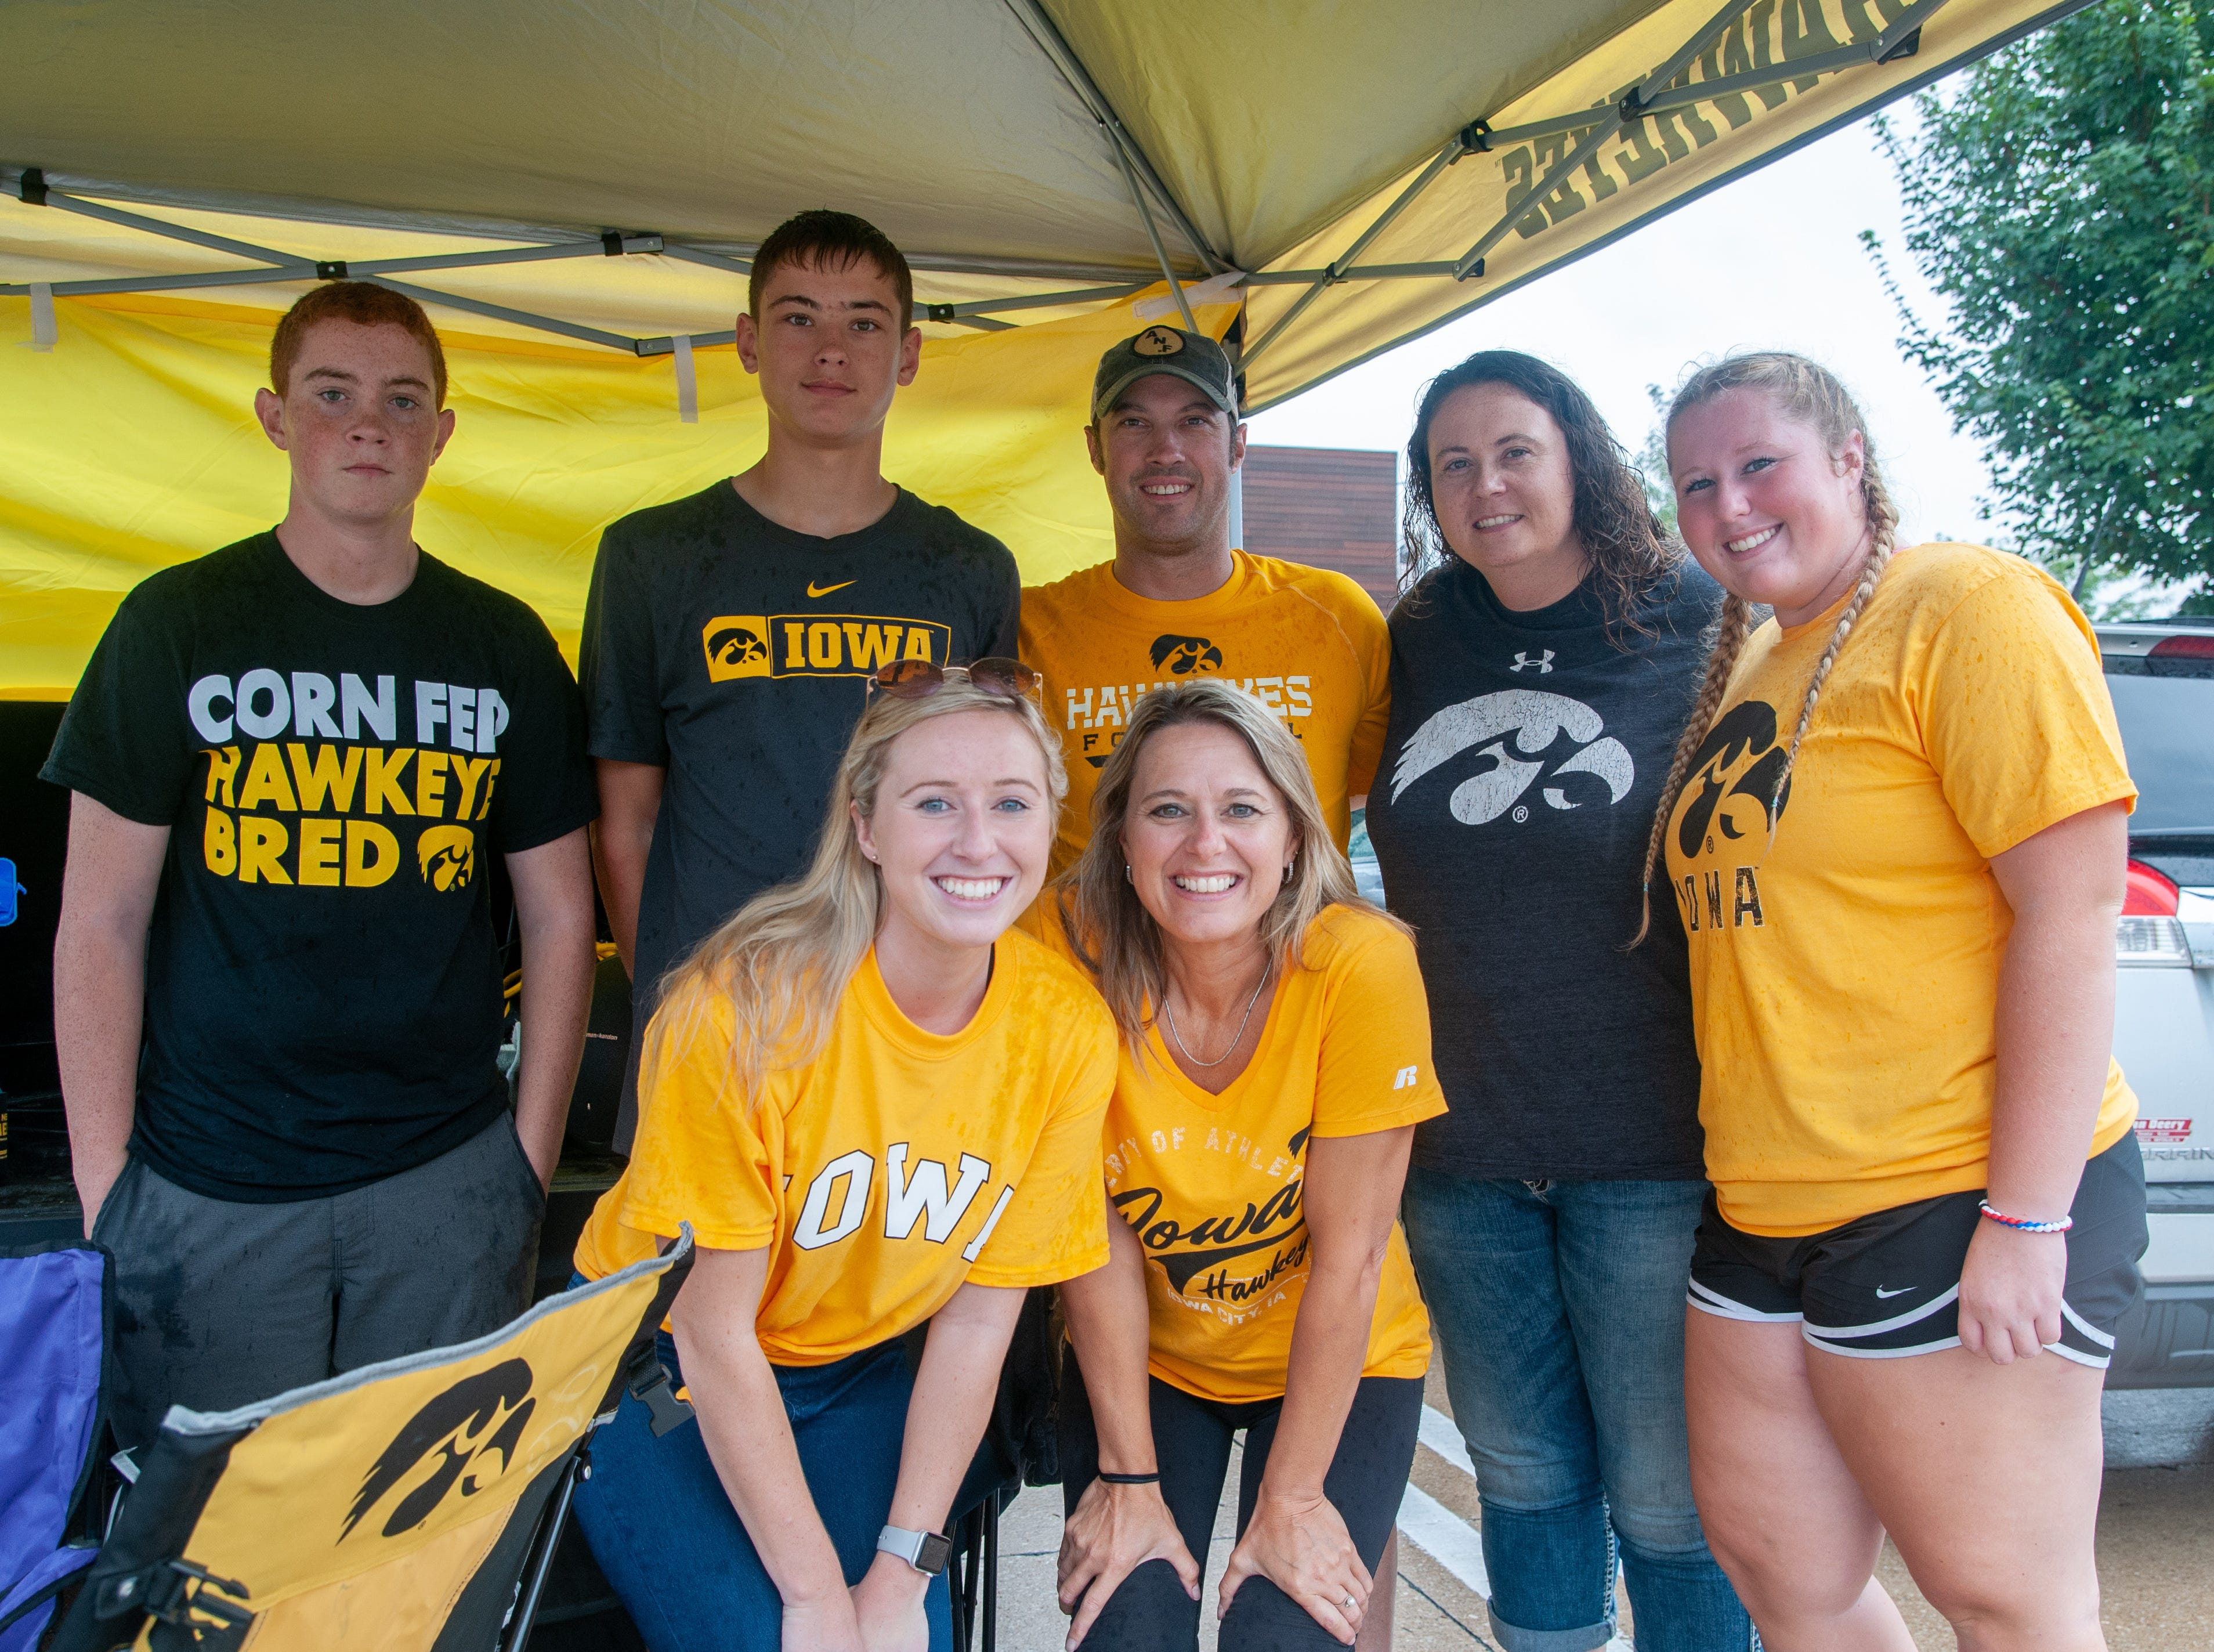 The Sproul family, of Grundy Center and Waterloo, Saturday, Sept. 1, 2018, while tailgating before the Iowa game against Northern Illinois in Iowa City.